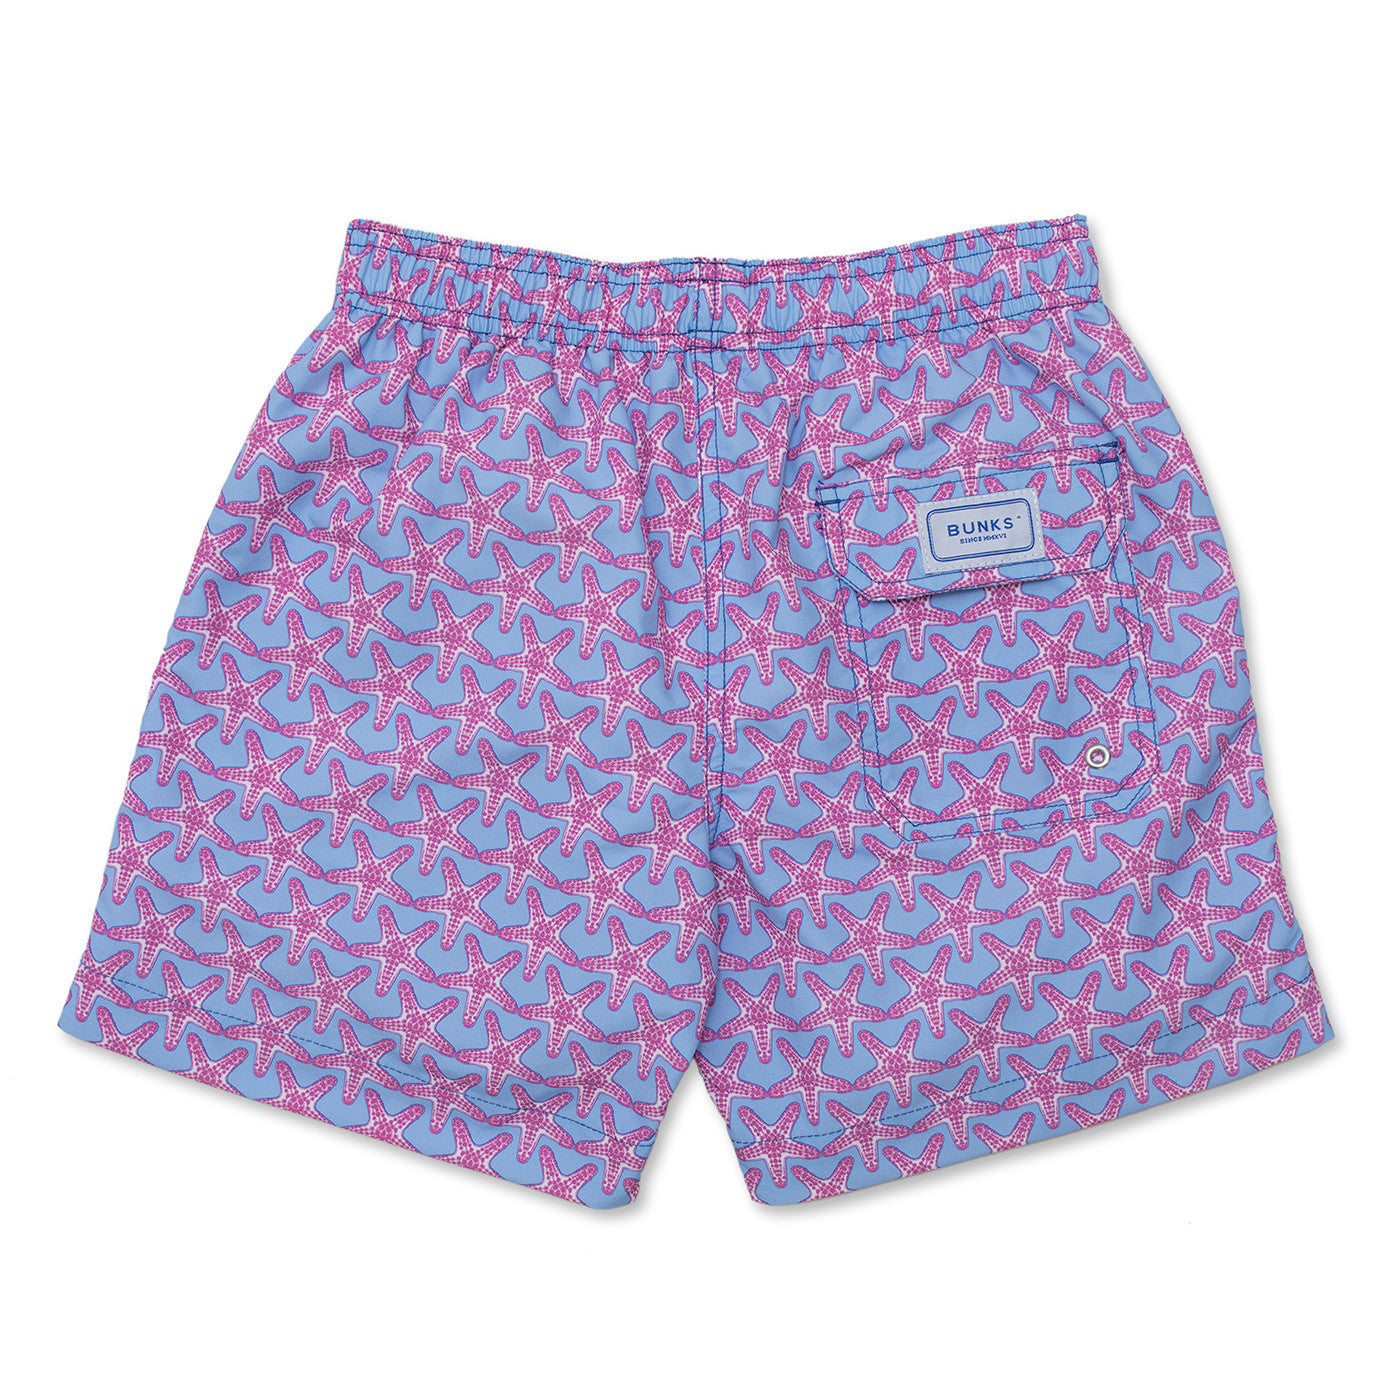 Starfish - Light Blue / Coral Pink